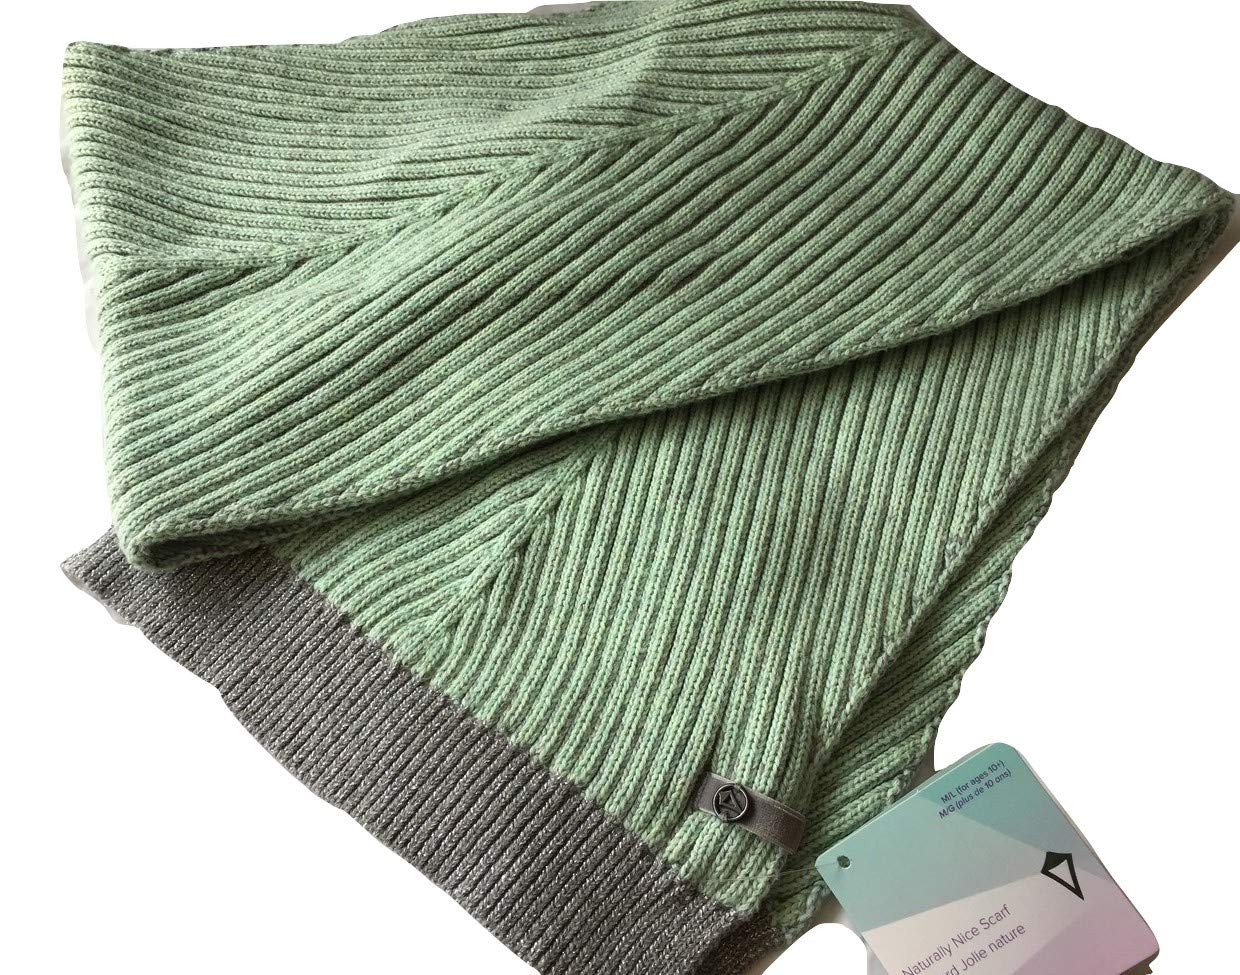 Lululemon Ivivva Natually Nice Scarf -Super Fun Green w/Shimmering at the end